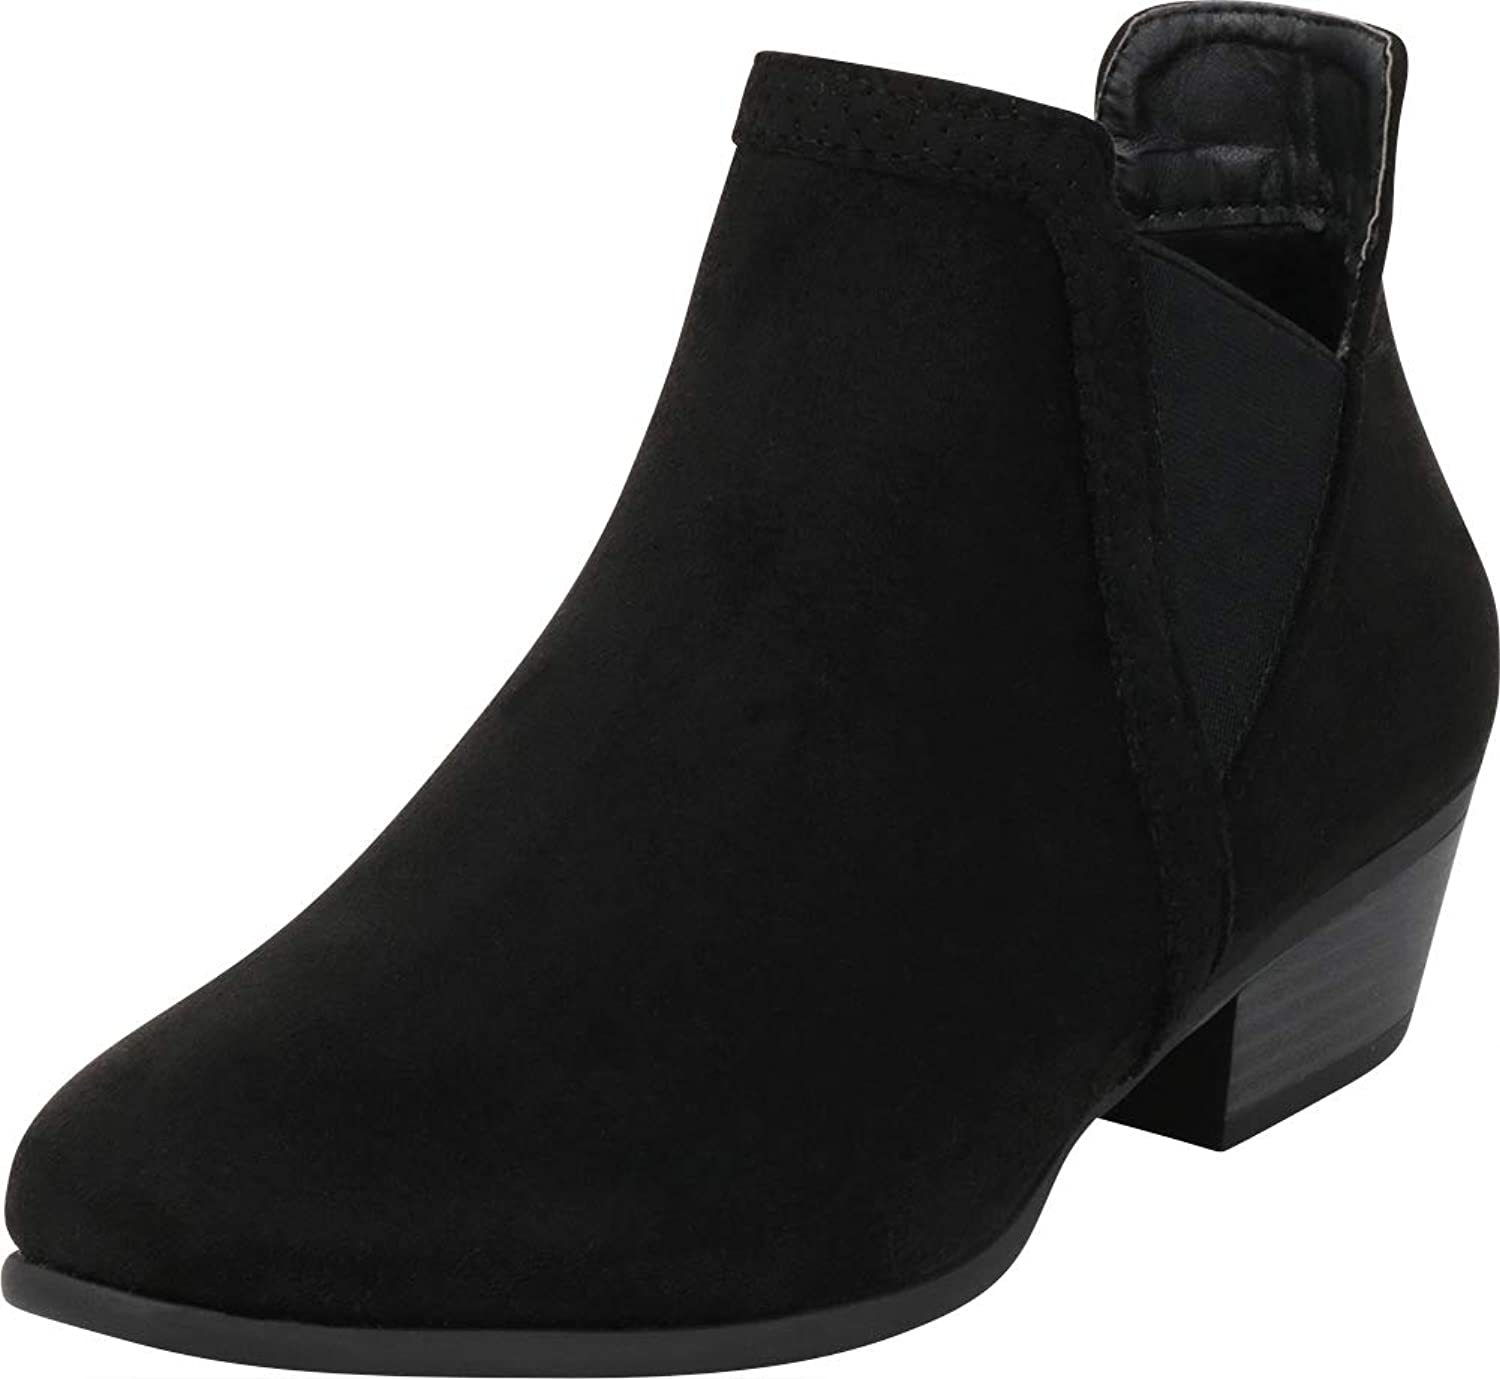 Cambridge Select Women's V Cutout Chelsea Stretch Chunky Stacked Low Heel Ankle Bootie